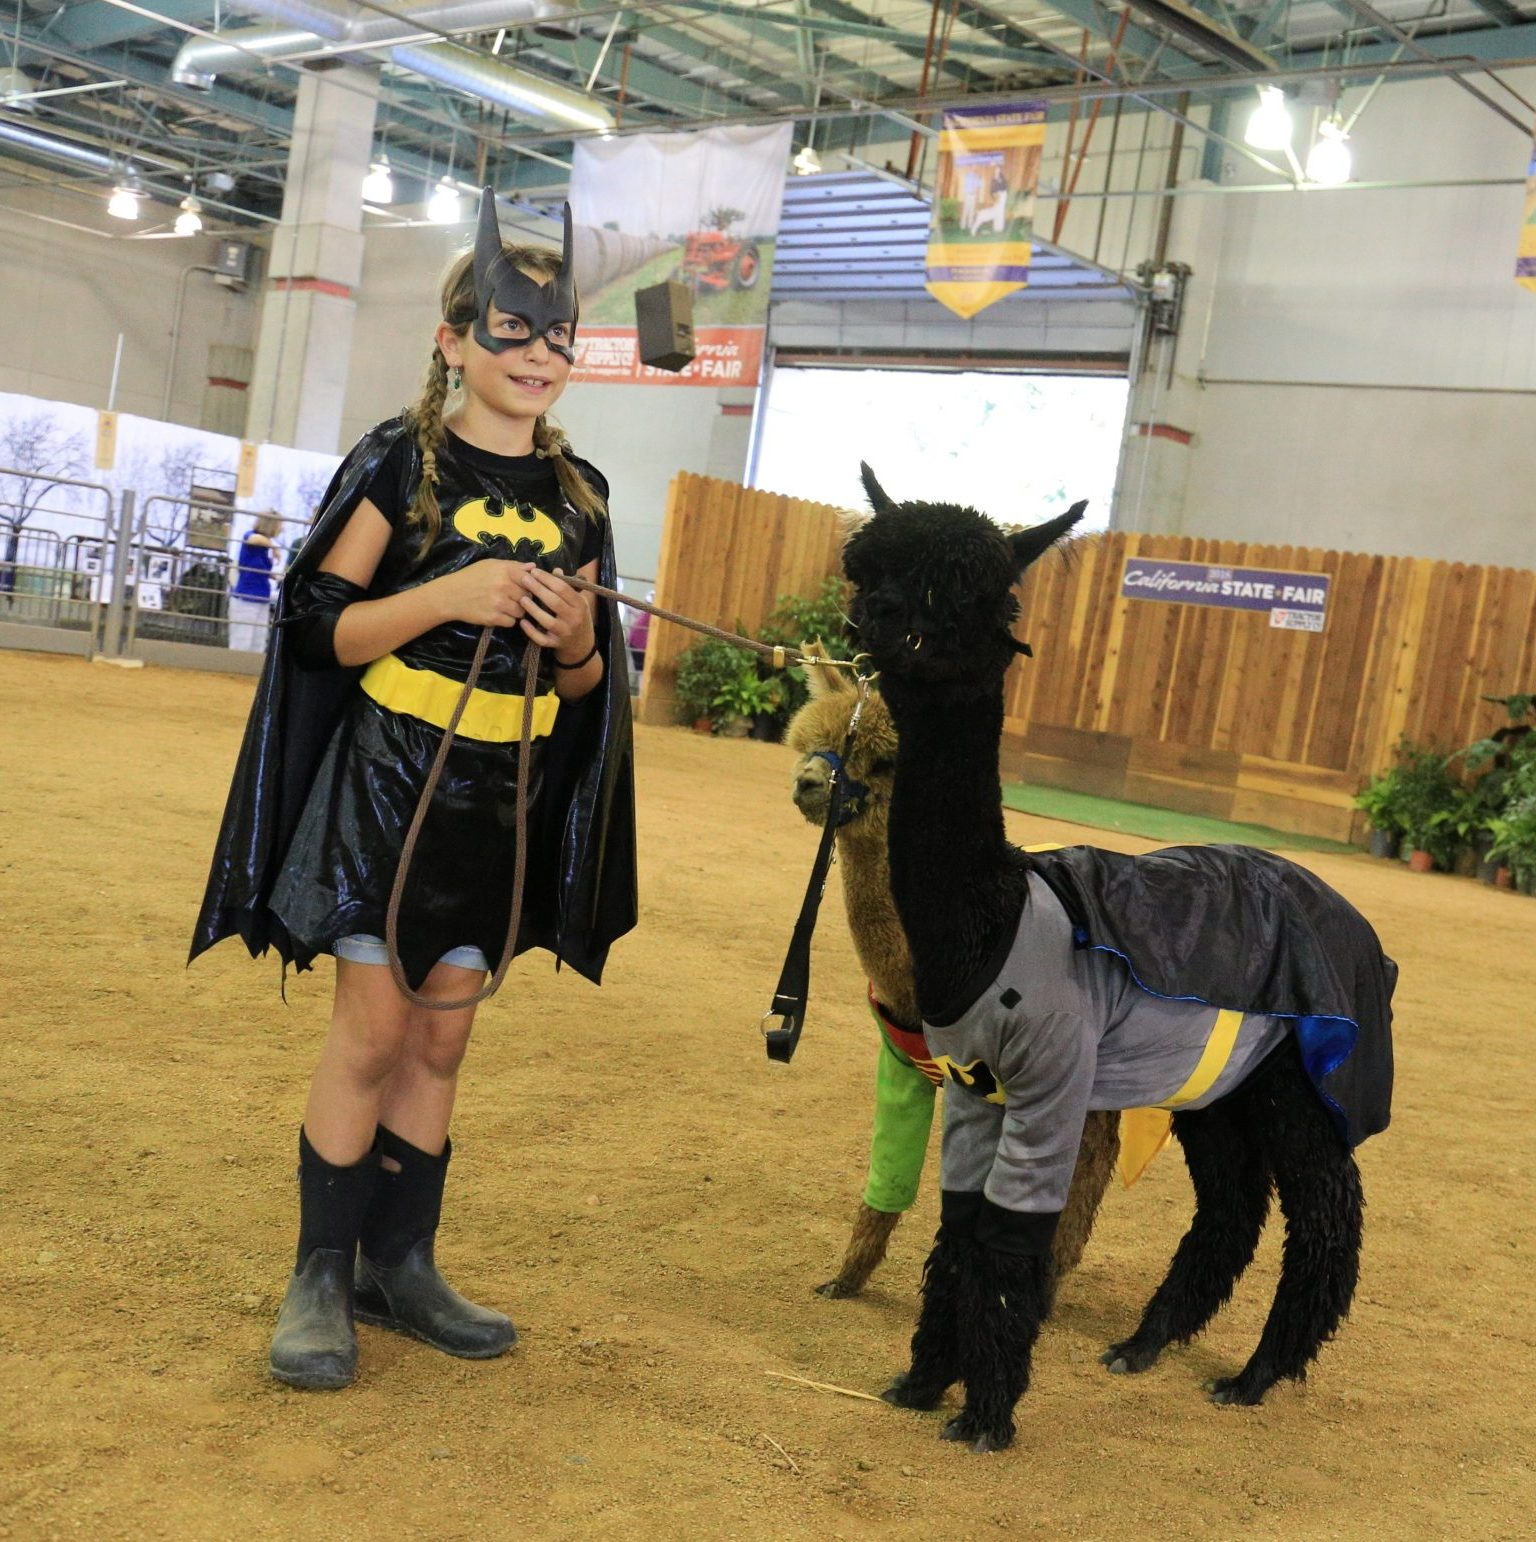 Alpaca and llama dressed up as bat man and robin with girl in bat man outfit